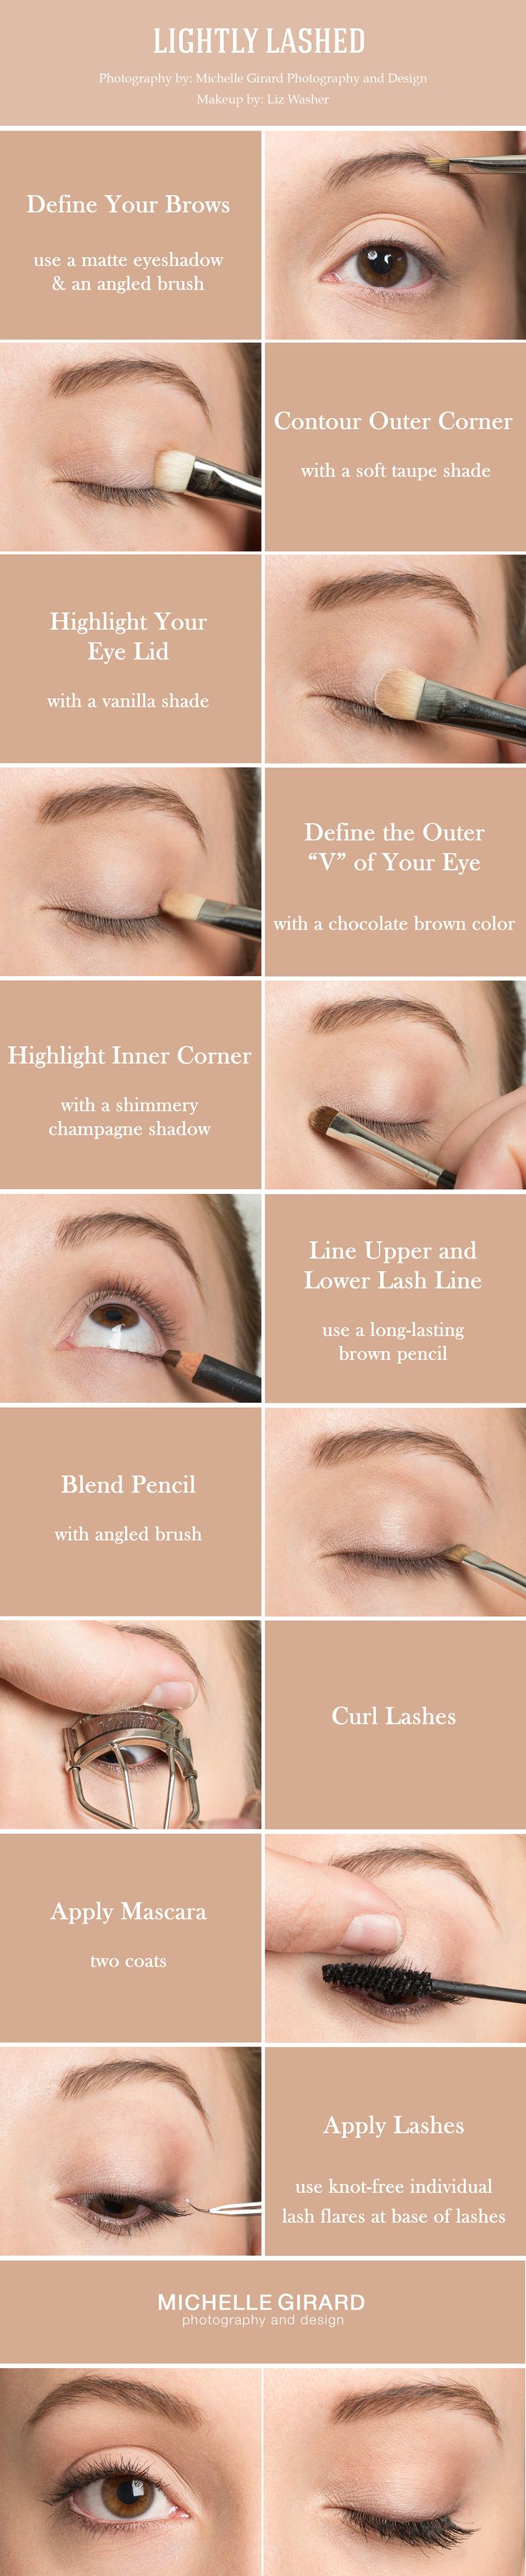 CLEAN AND NATURAL MAKEUP WITH LOVELY LASHES :: TUTORIALS WITH LIZ WASHER